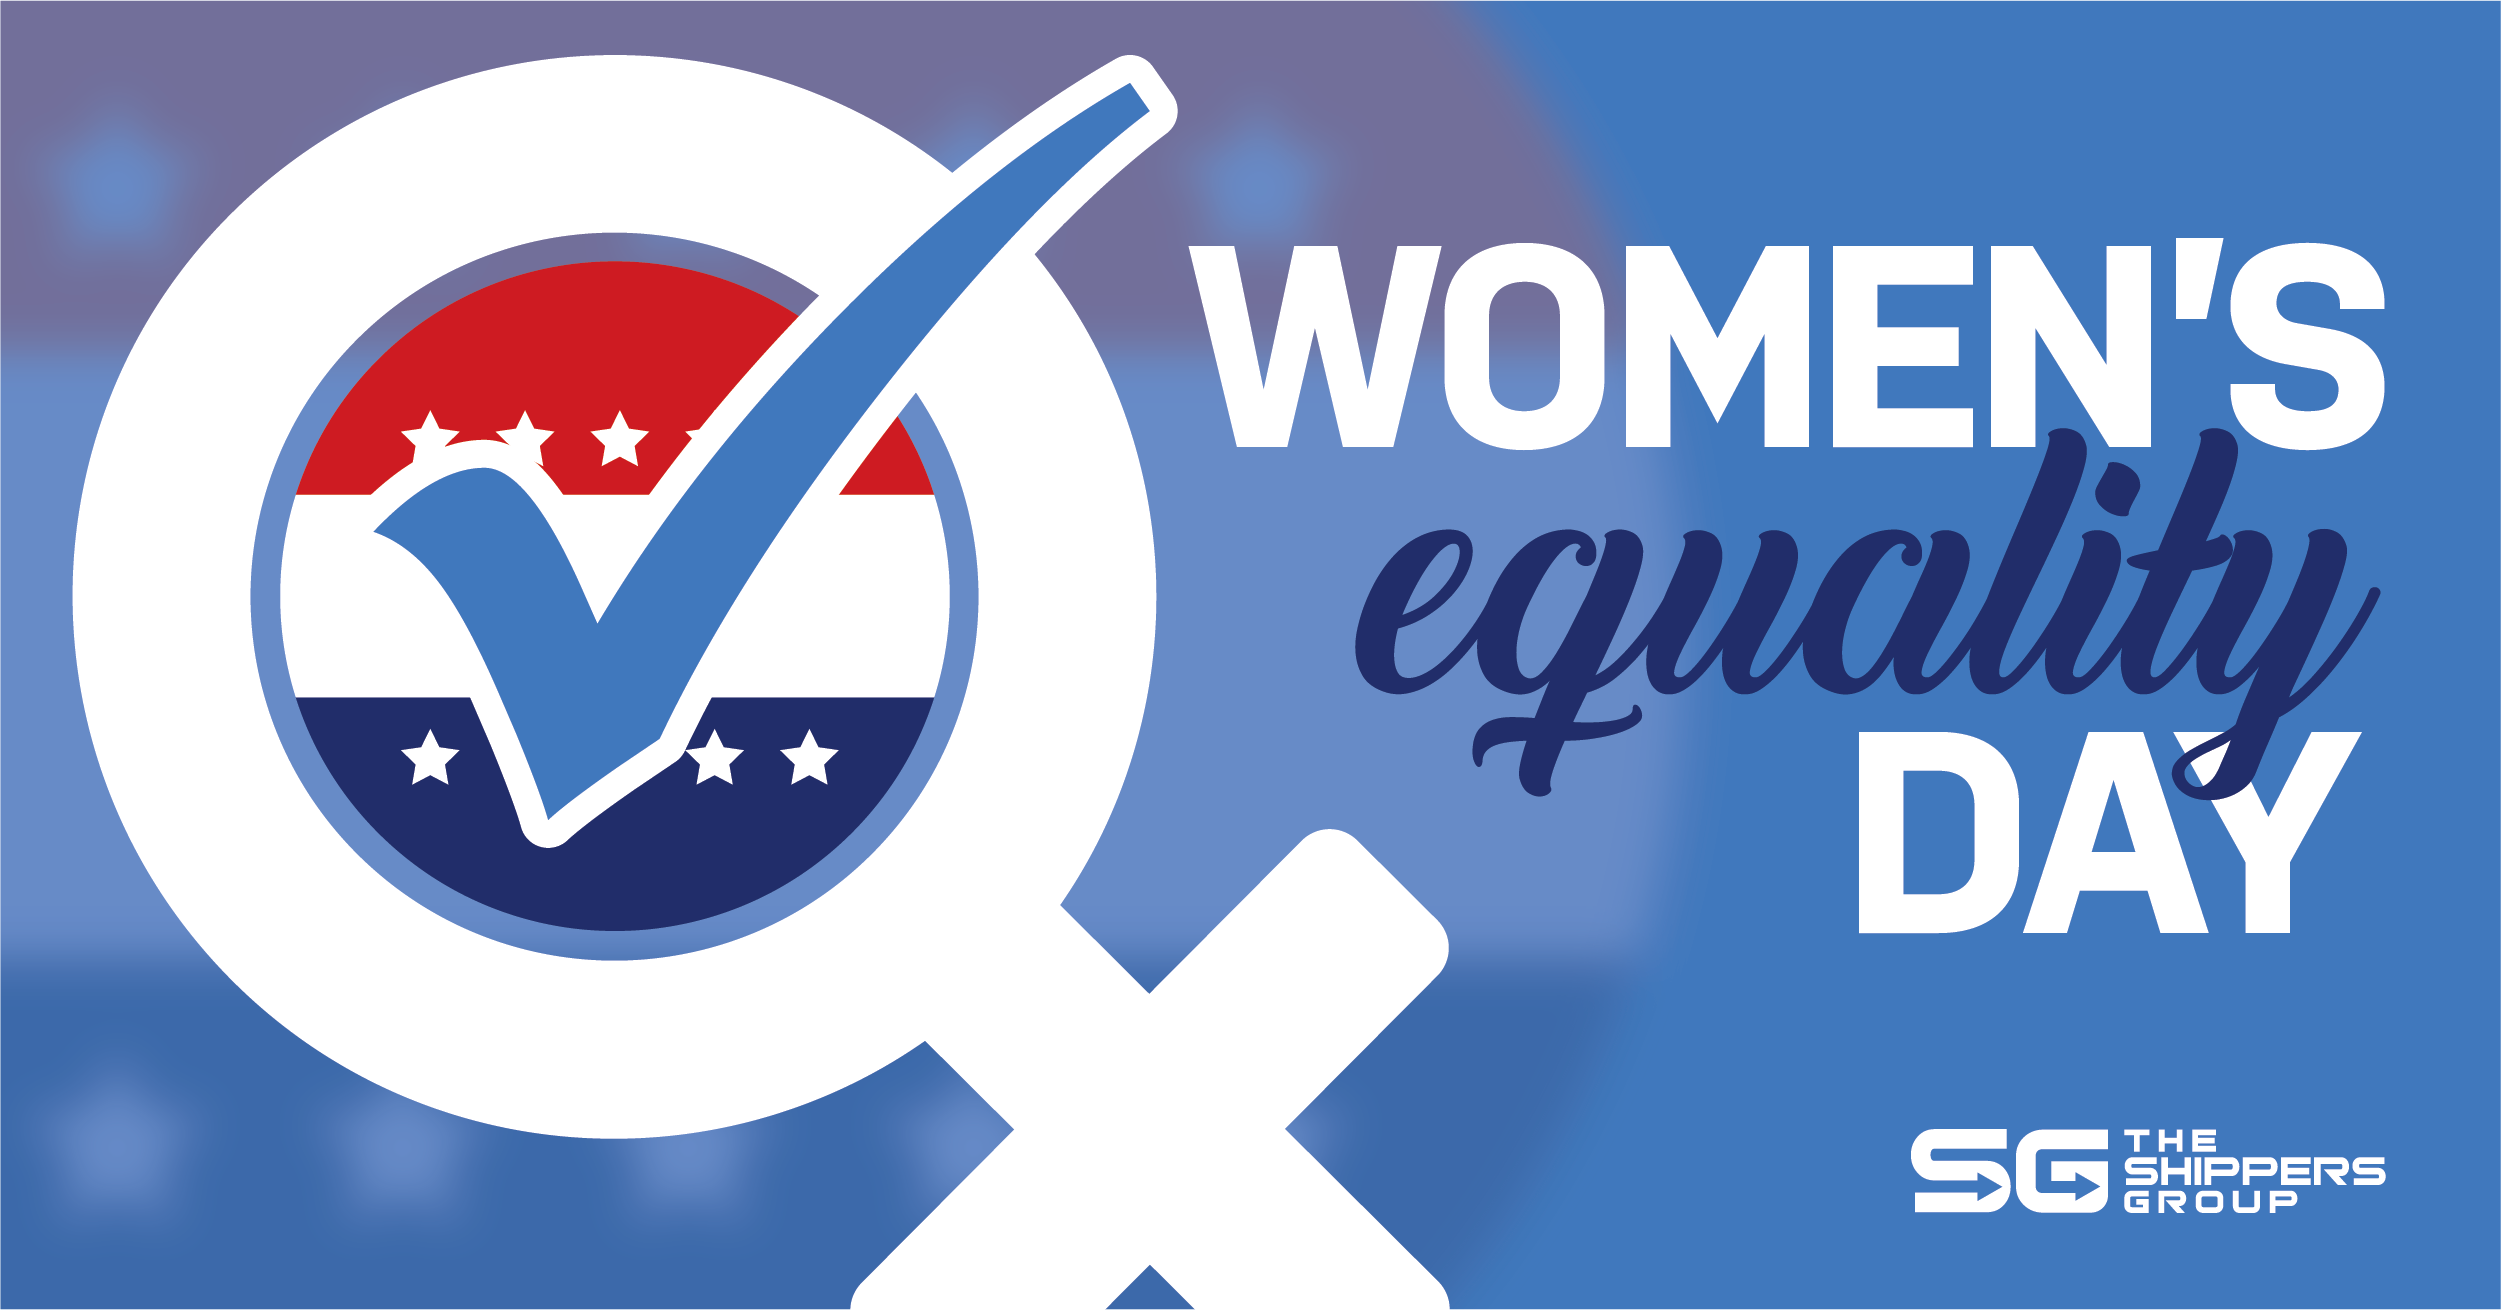 The Shippers Group is celebrating women's right to vote on National Women's Equality Day